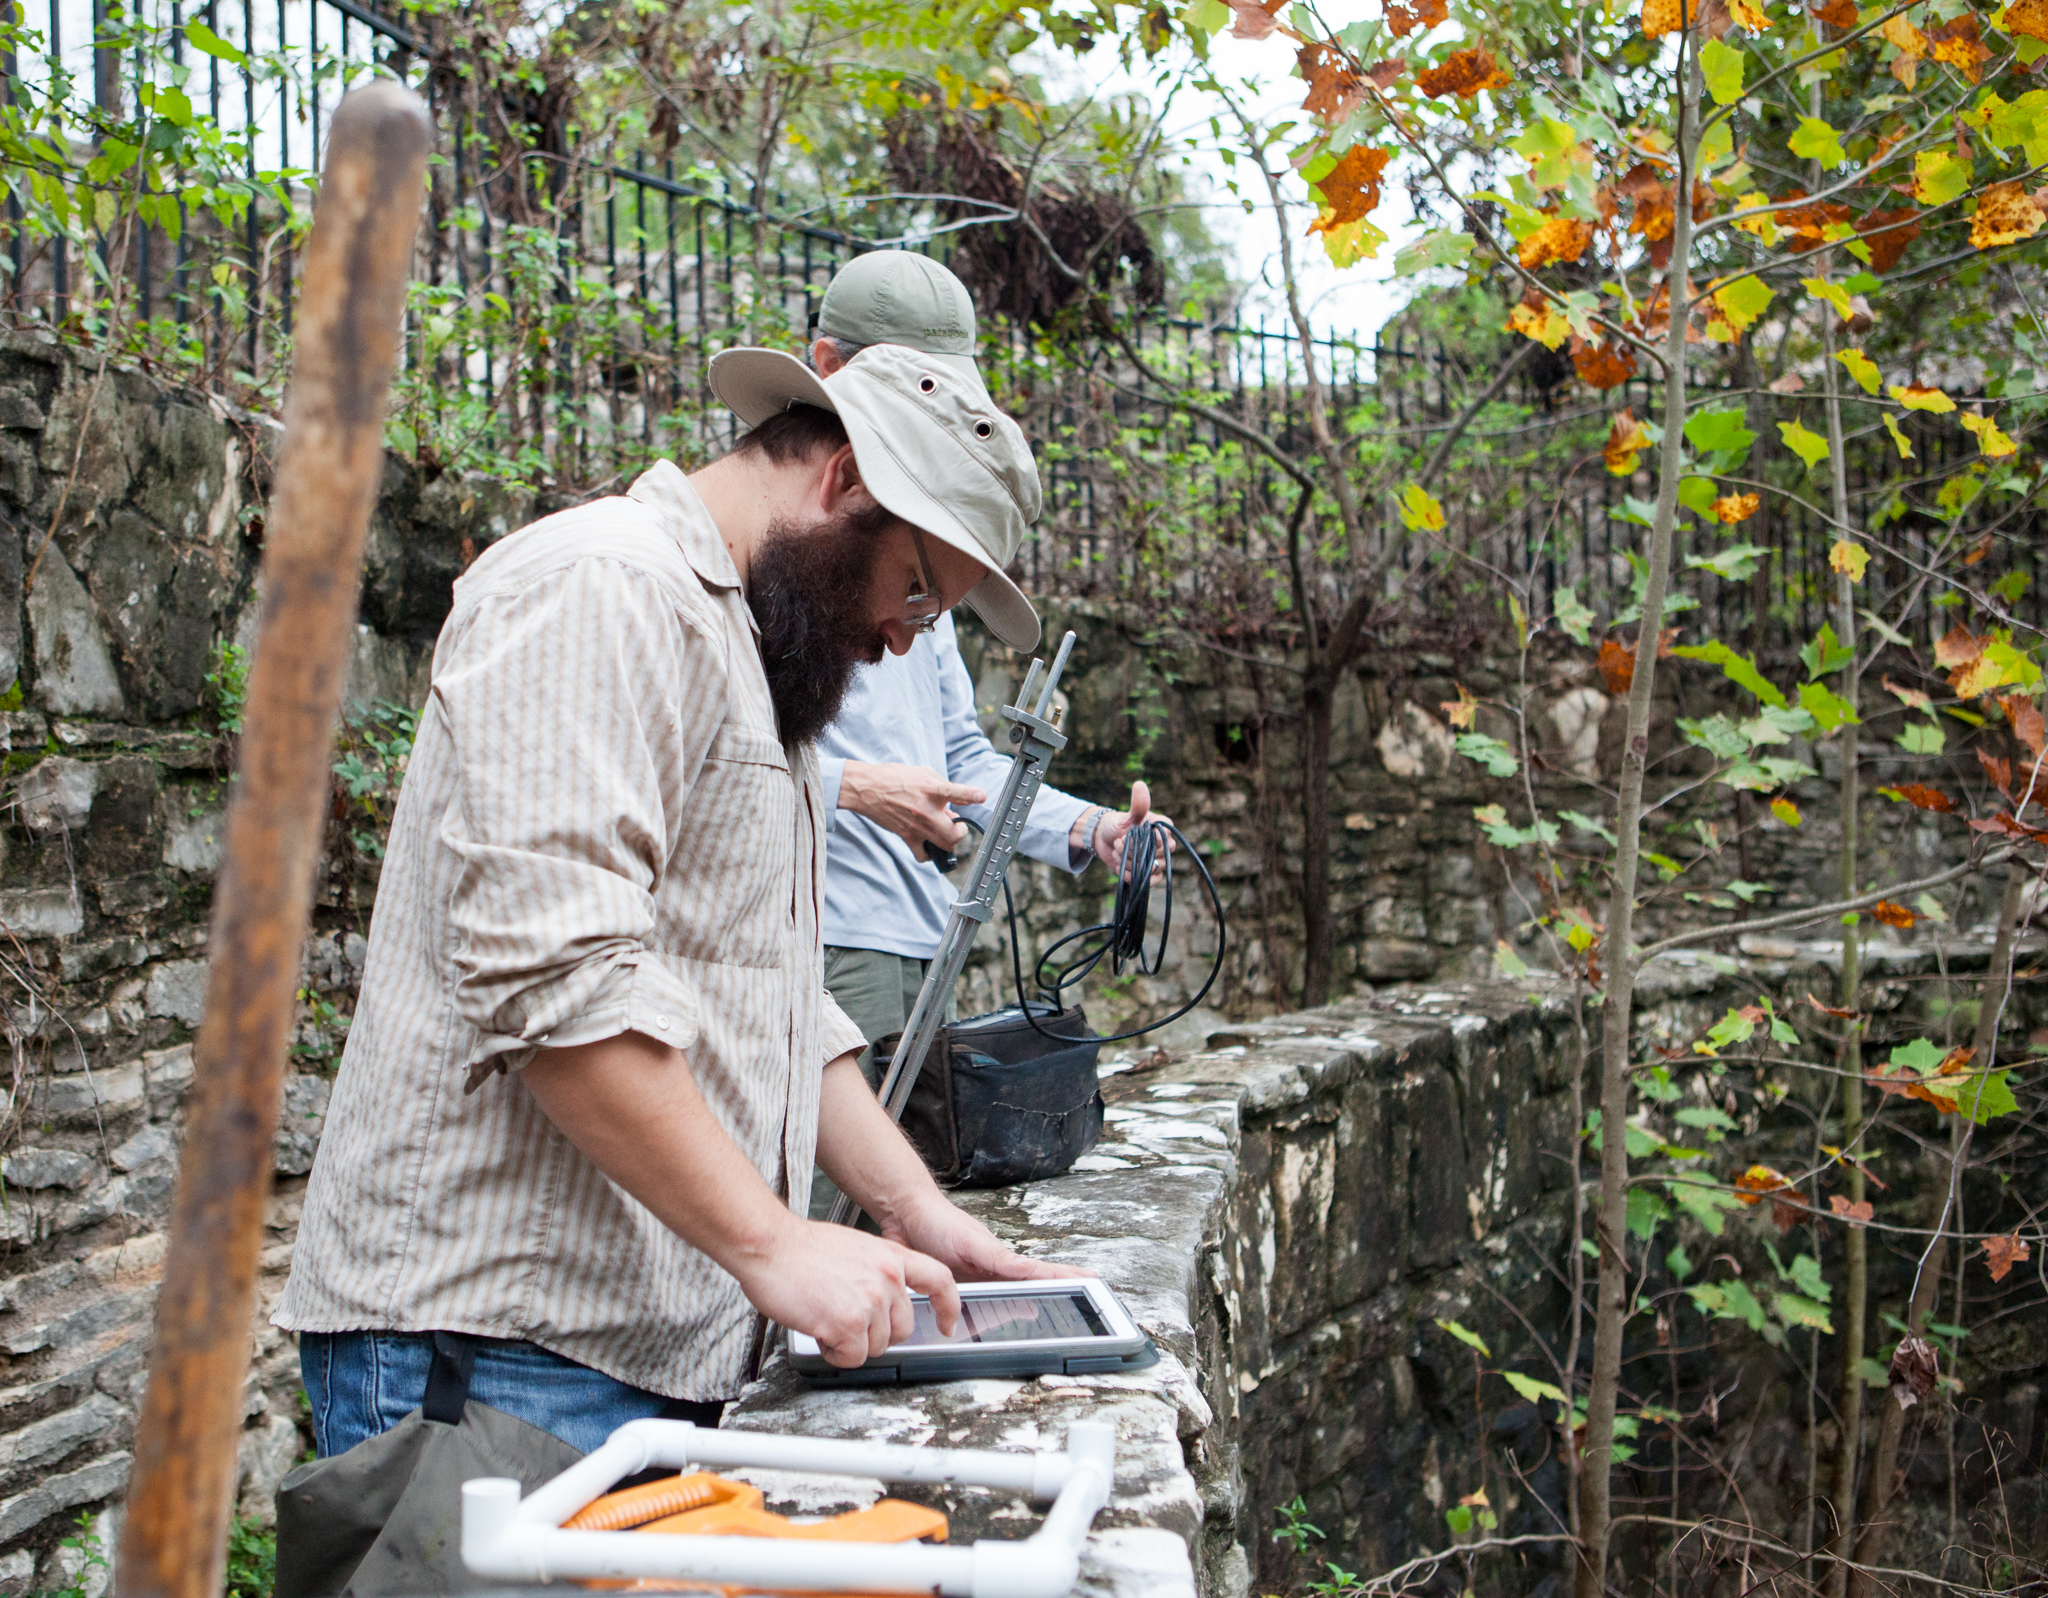 Nate Bendik, foreground, and Tom Devitt prepare their equipment before a survey for Barton Springs salamanders at Sunken Garden in Austin's Zilker Park. Both are salamander biologists employed by the city.